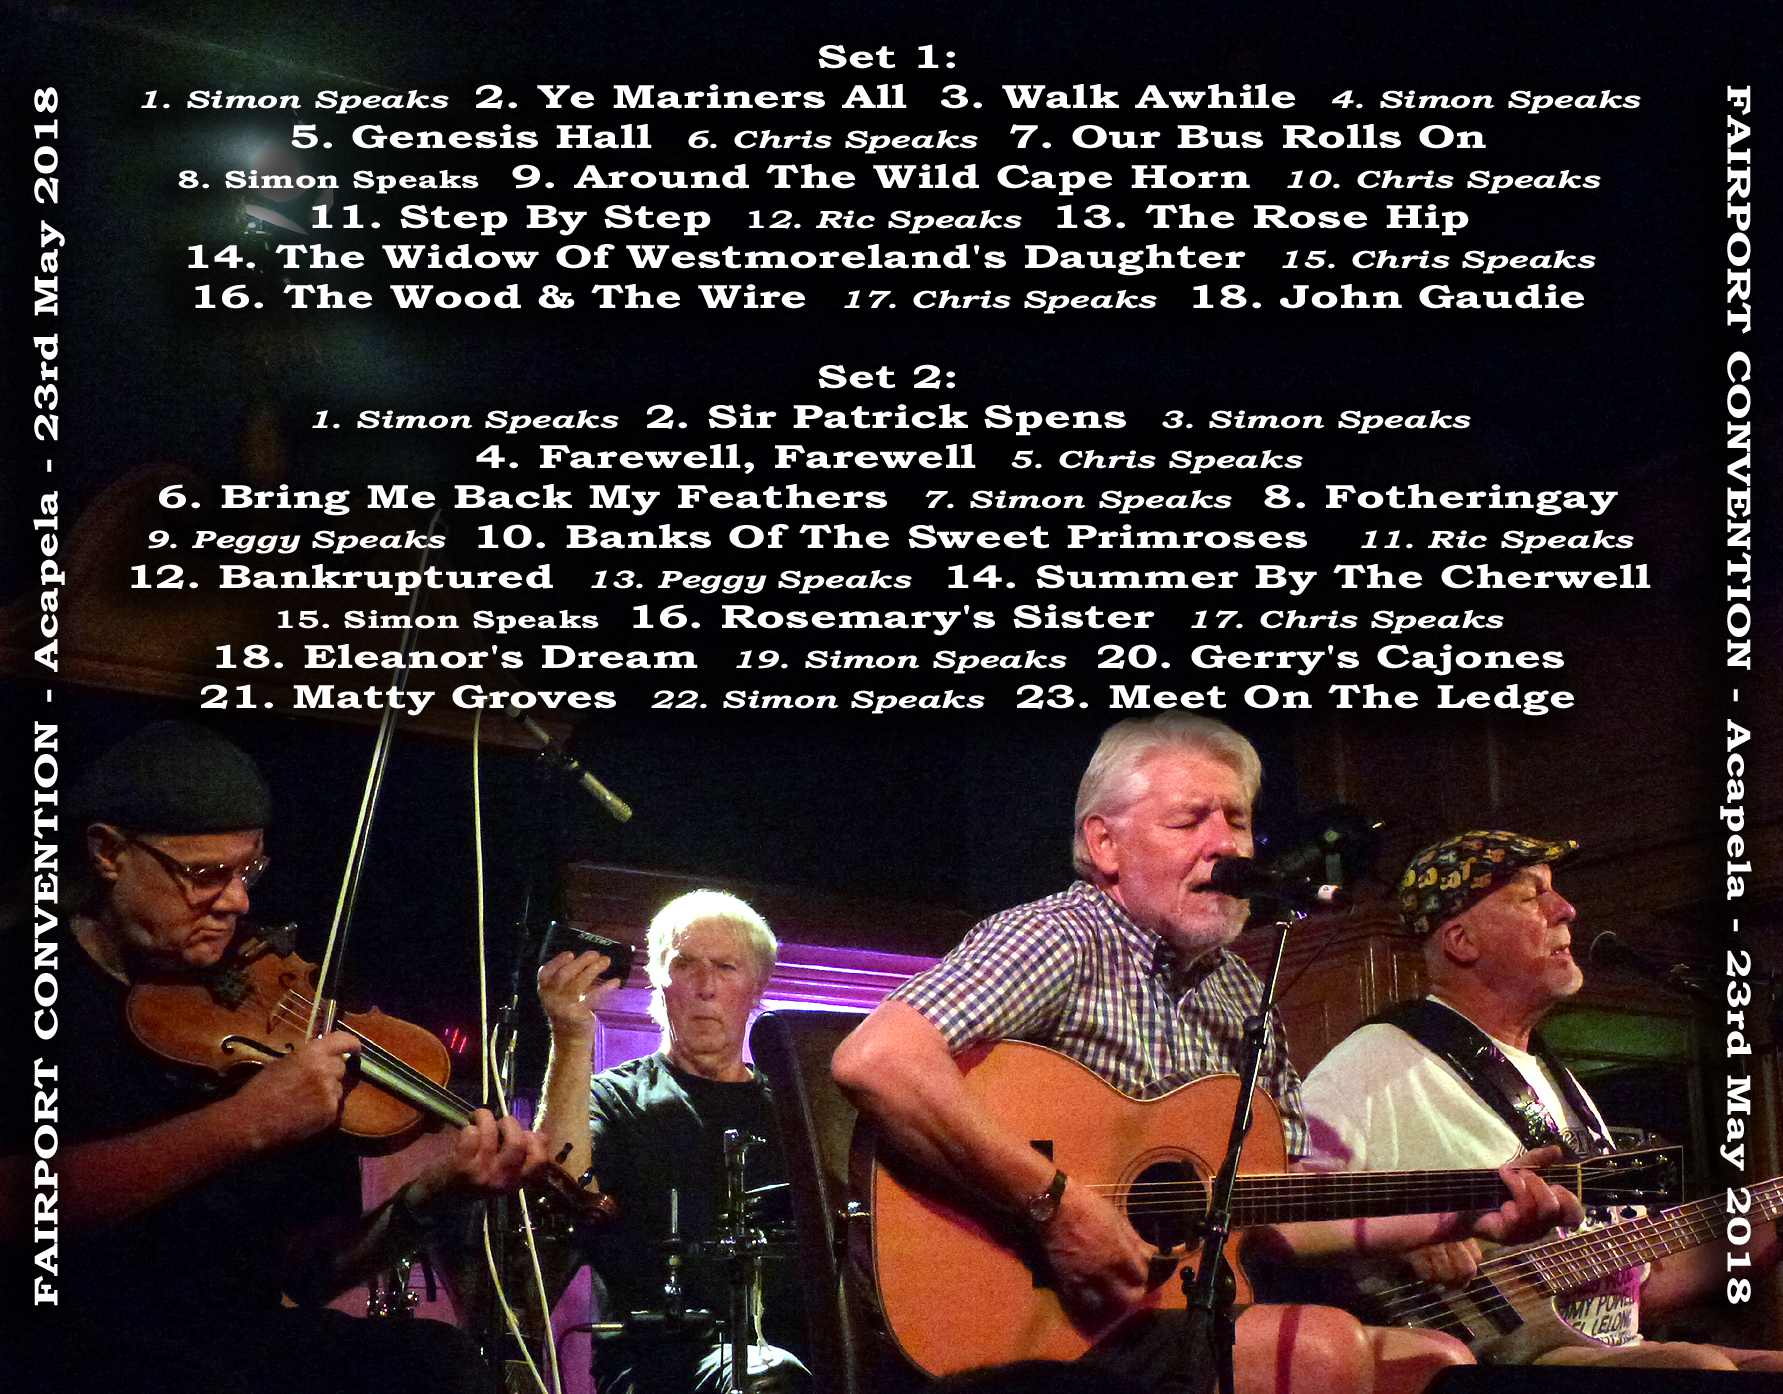 FairportConvention2018-05-23PentyrchWalesUK (1).jpg